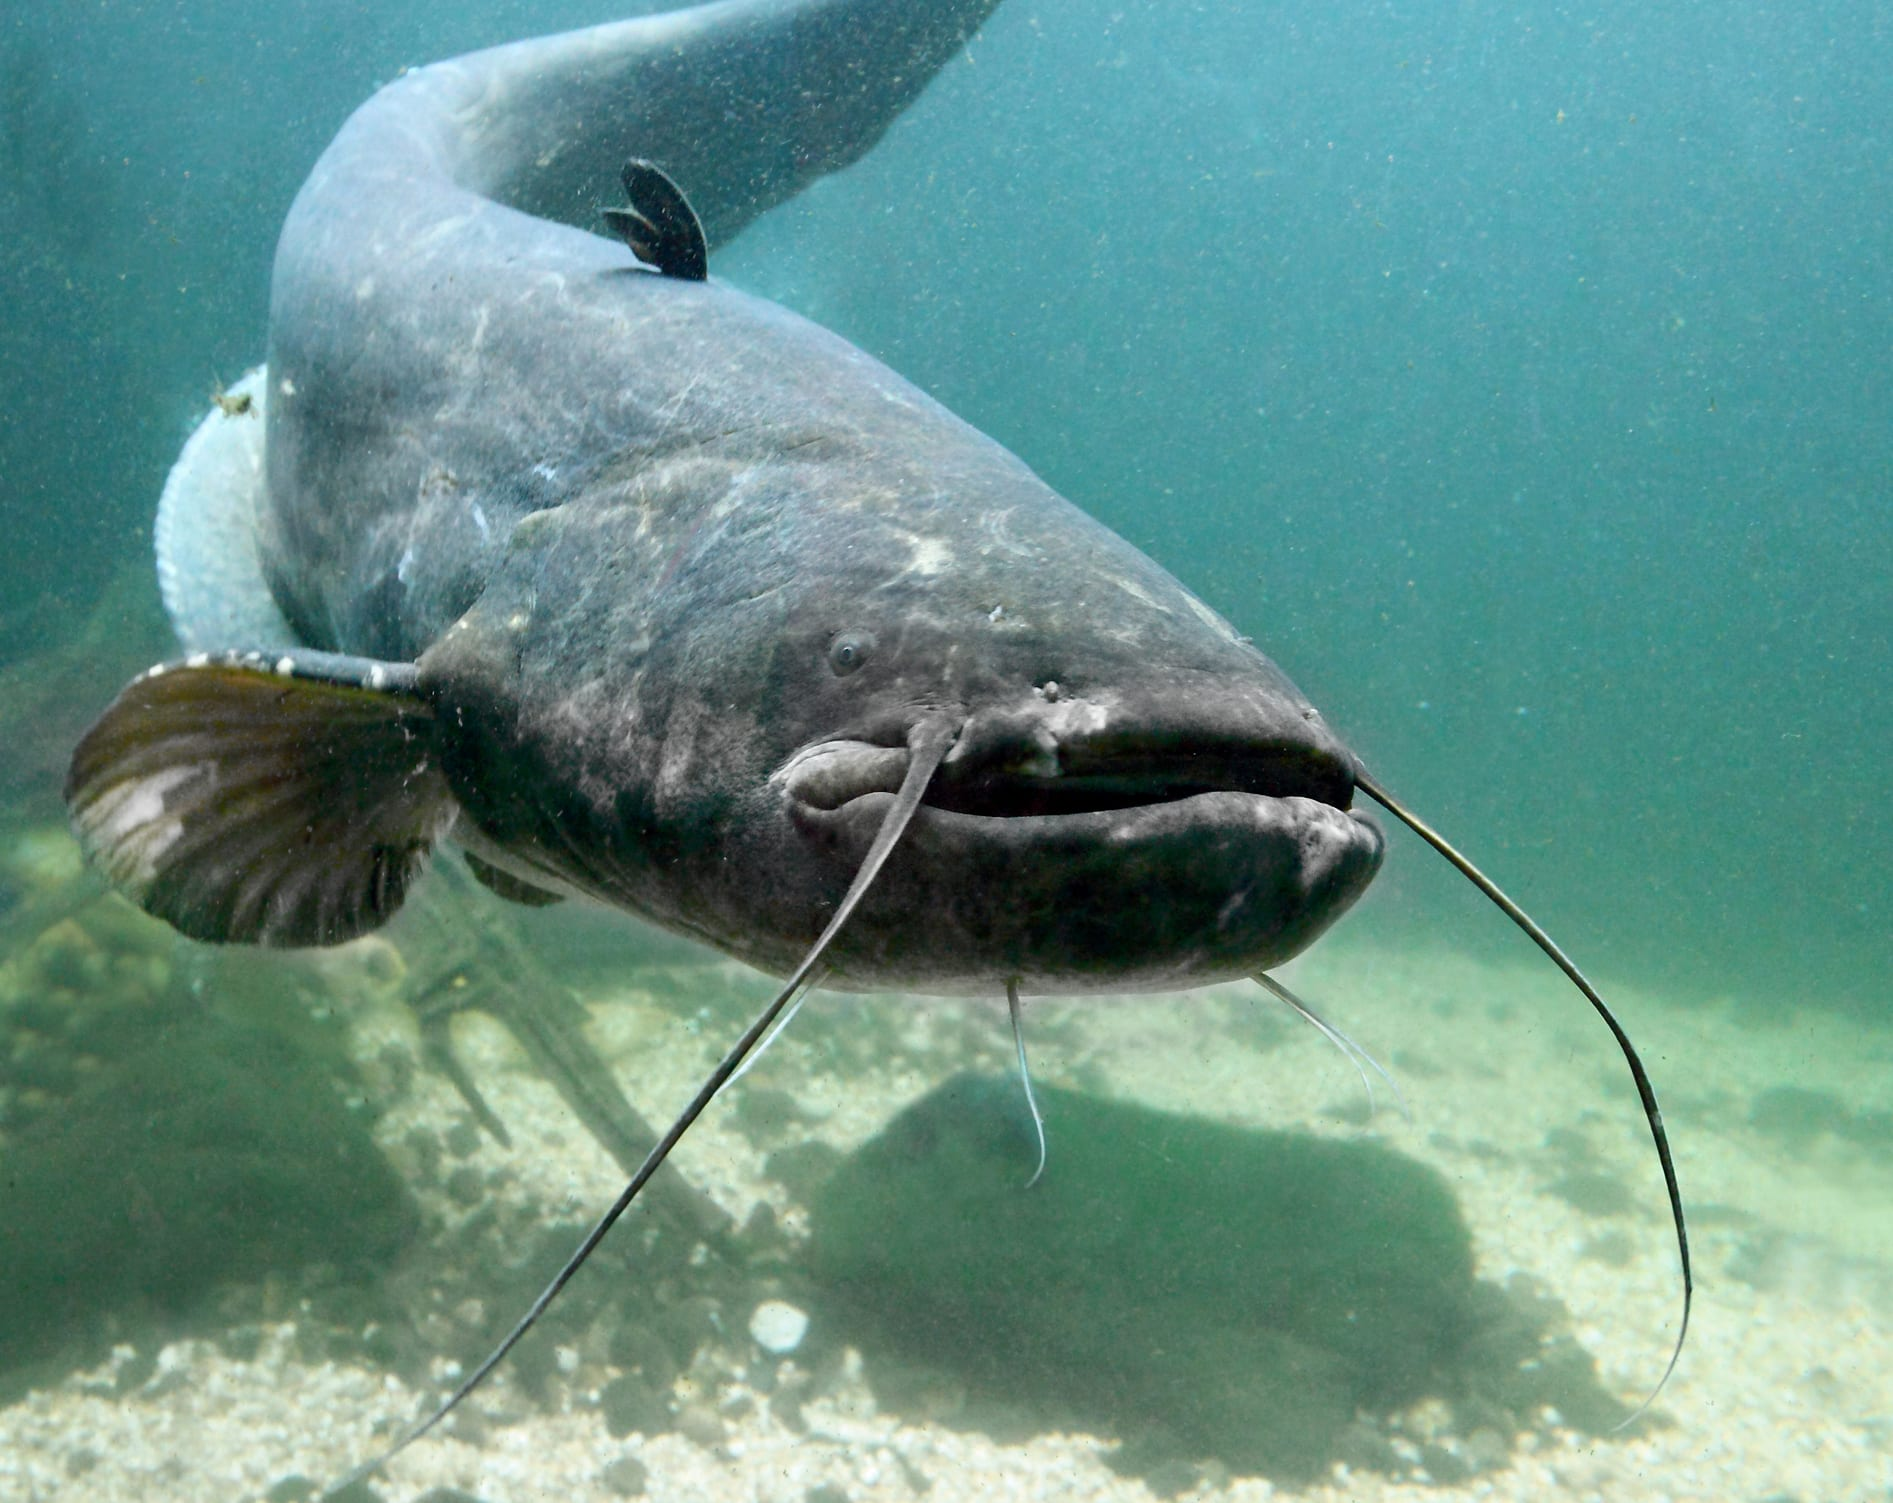 large river catfish